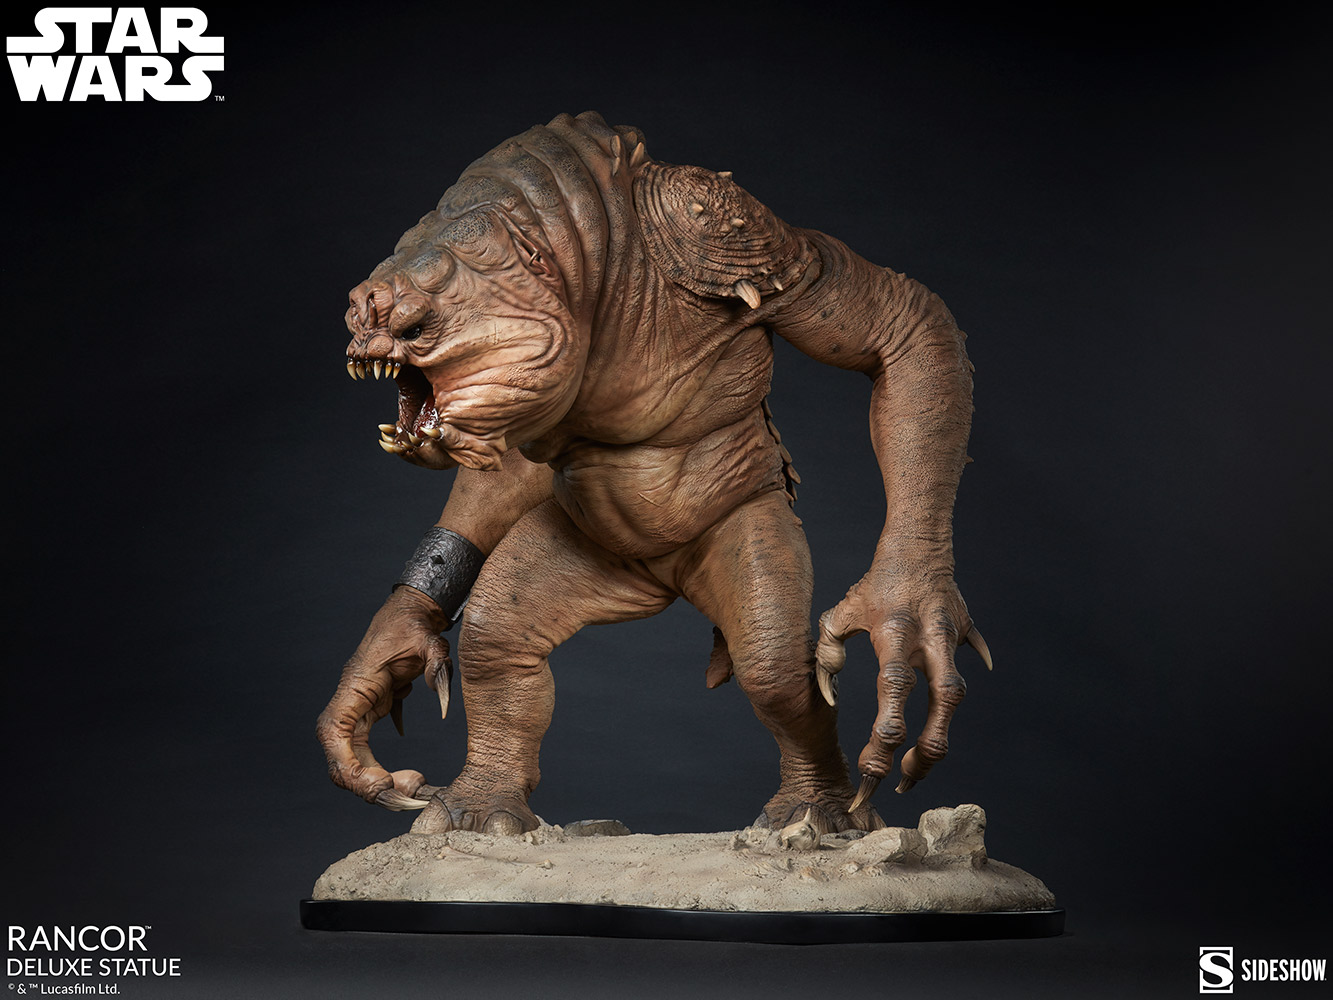 Link a Rancor-Deluxe-Statue-Star-Wars-collectibles-3